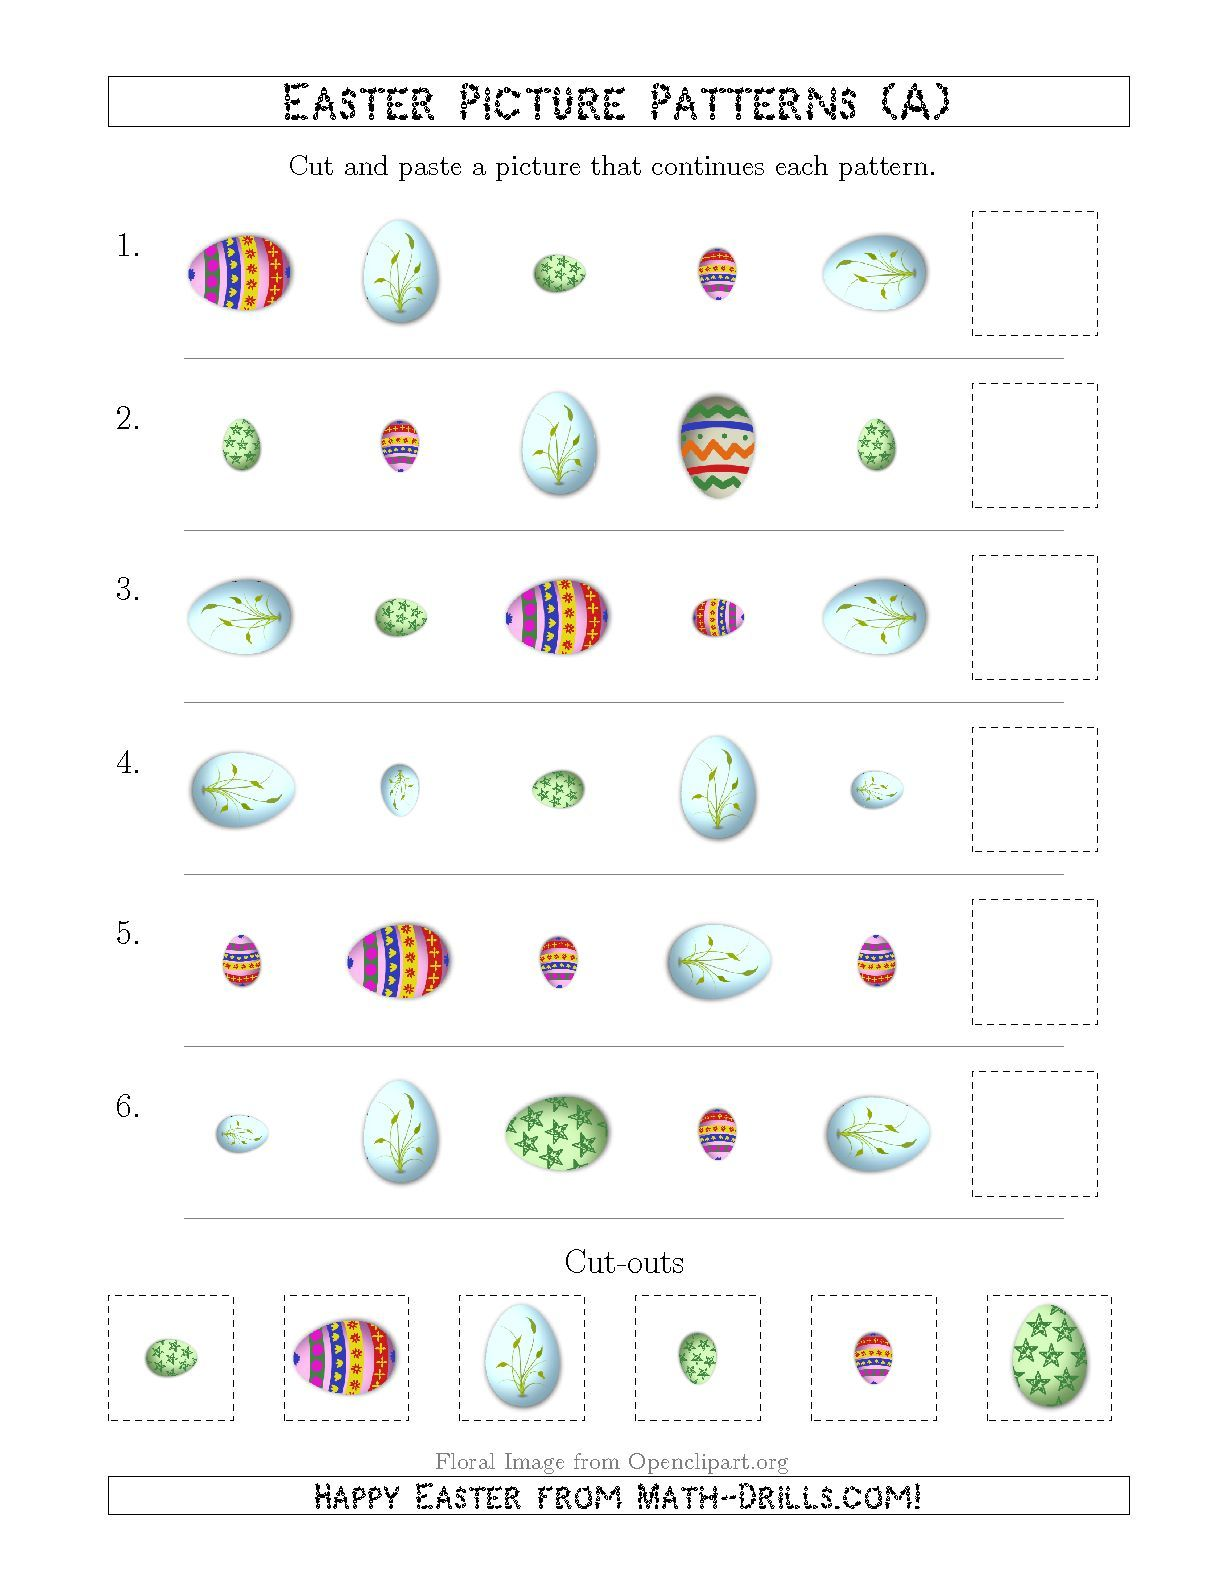 New Easter Egg Picture Patterns With Shape Size And